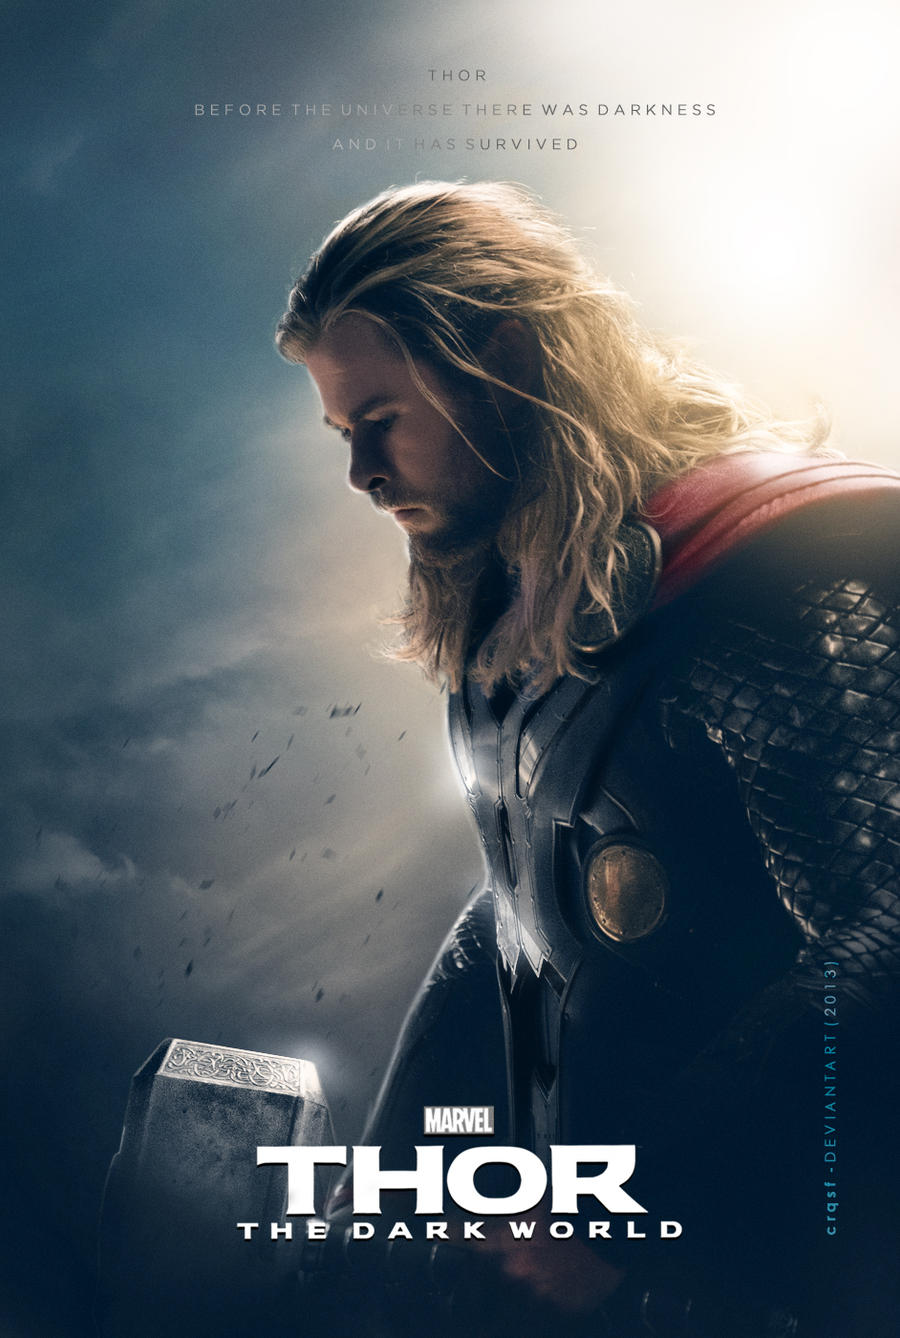 Thor The Dark World fan Thor poster by crqsf on DeviantArt